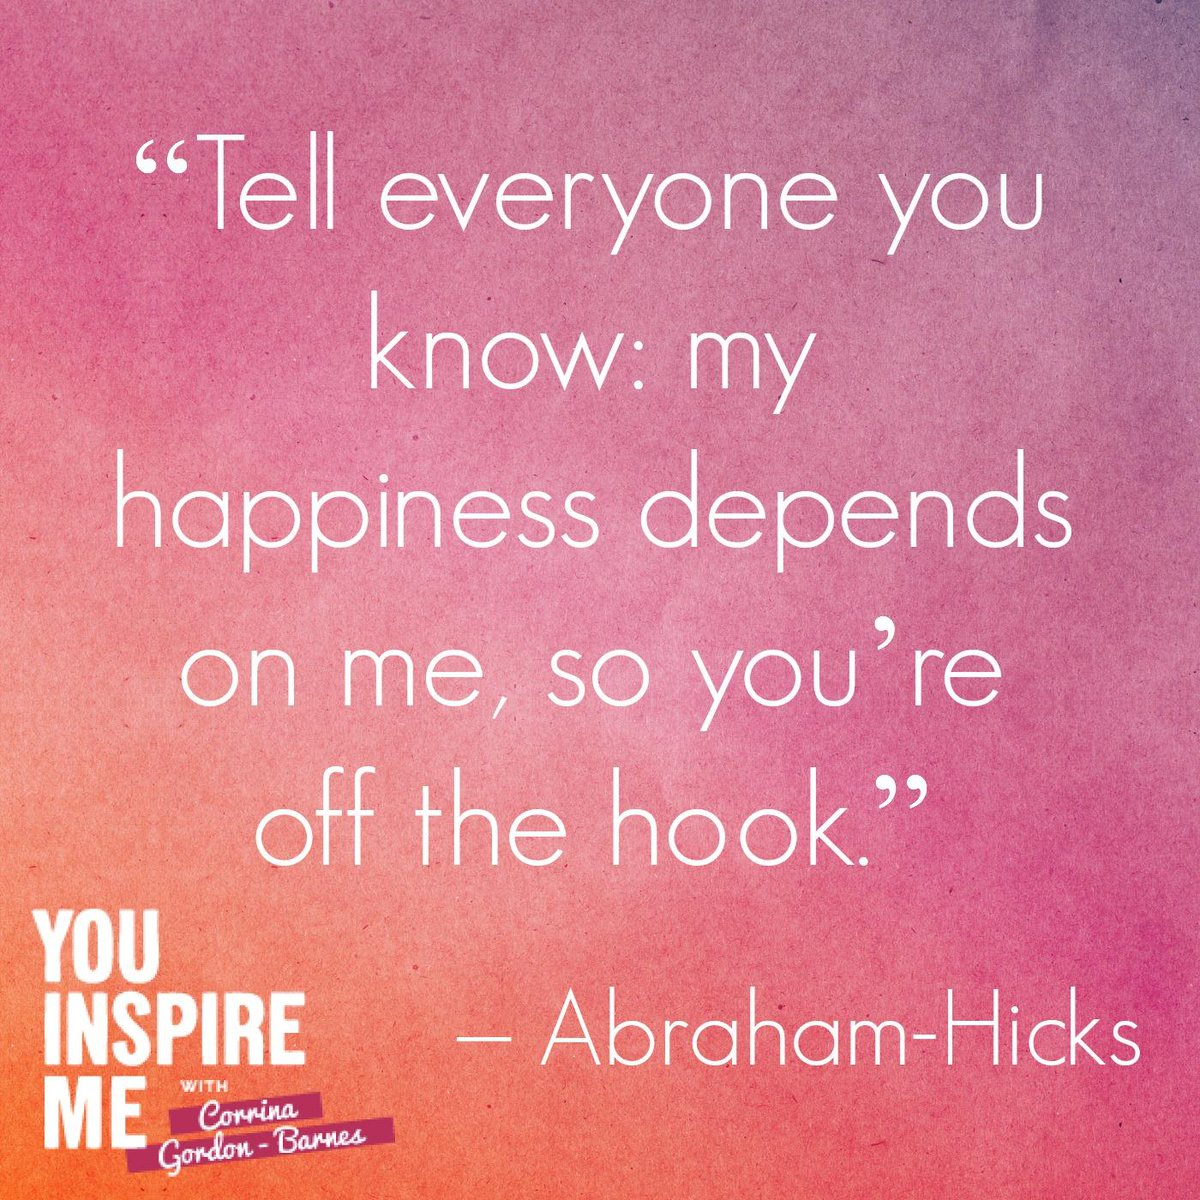 """Tell everyone you know: my happiness depends on me, so you're off the hook."" - Abraham-Hicks http://t.co/8LtI9LluId"